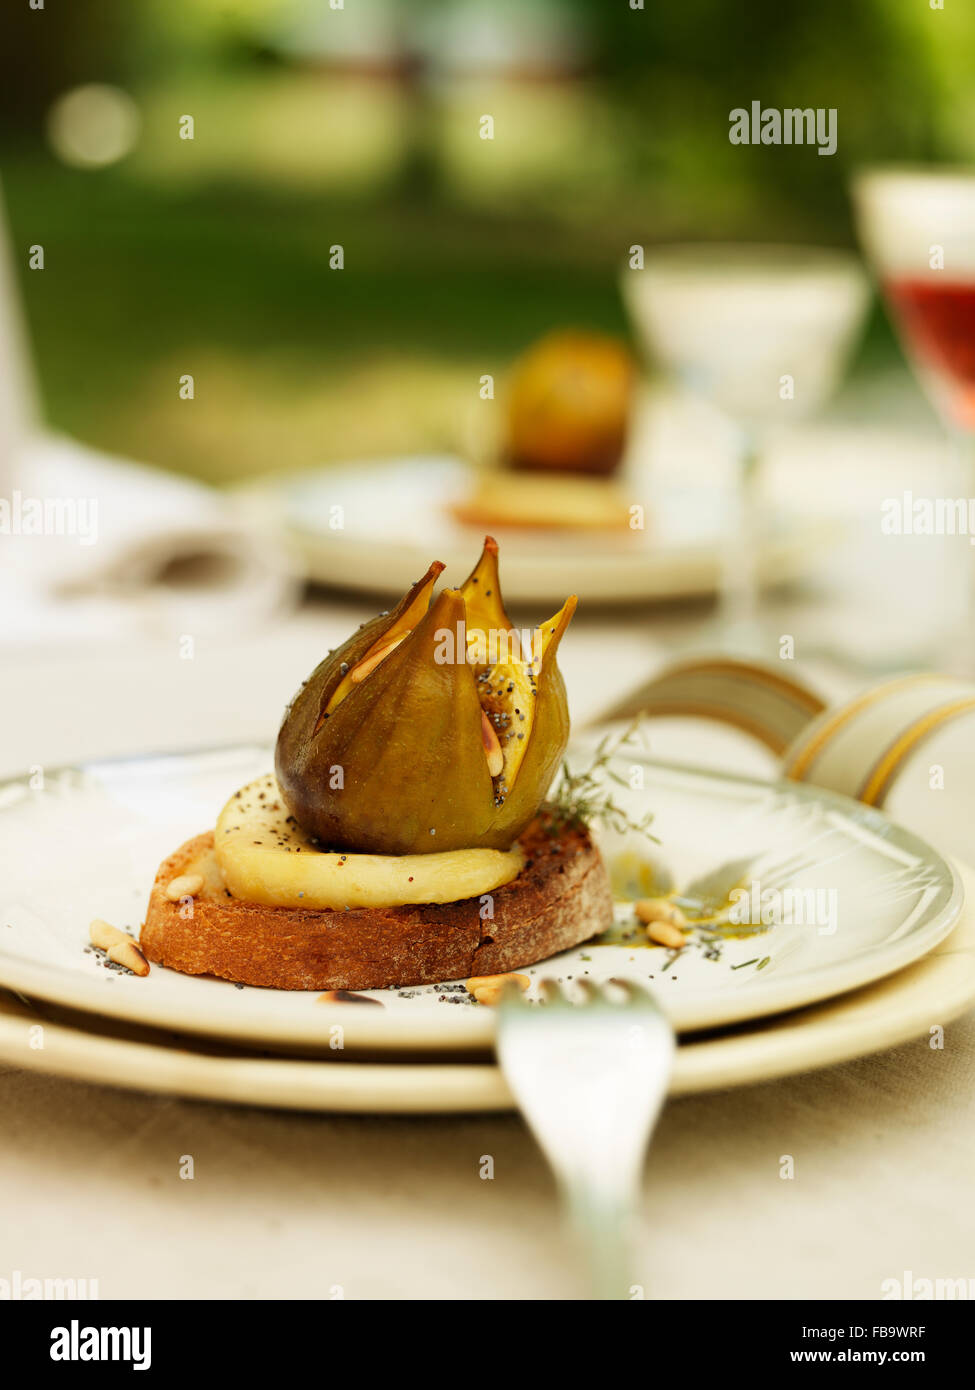 Sweden, Vastergotland, Bread with figs on chevre cheese and with some pine nuts - Stock Image